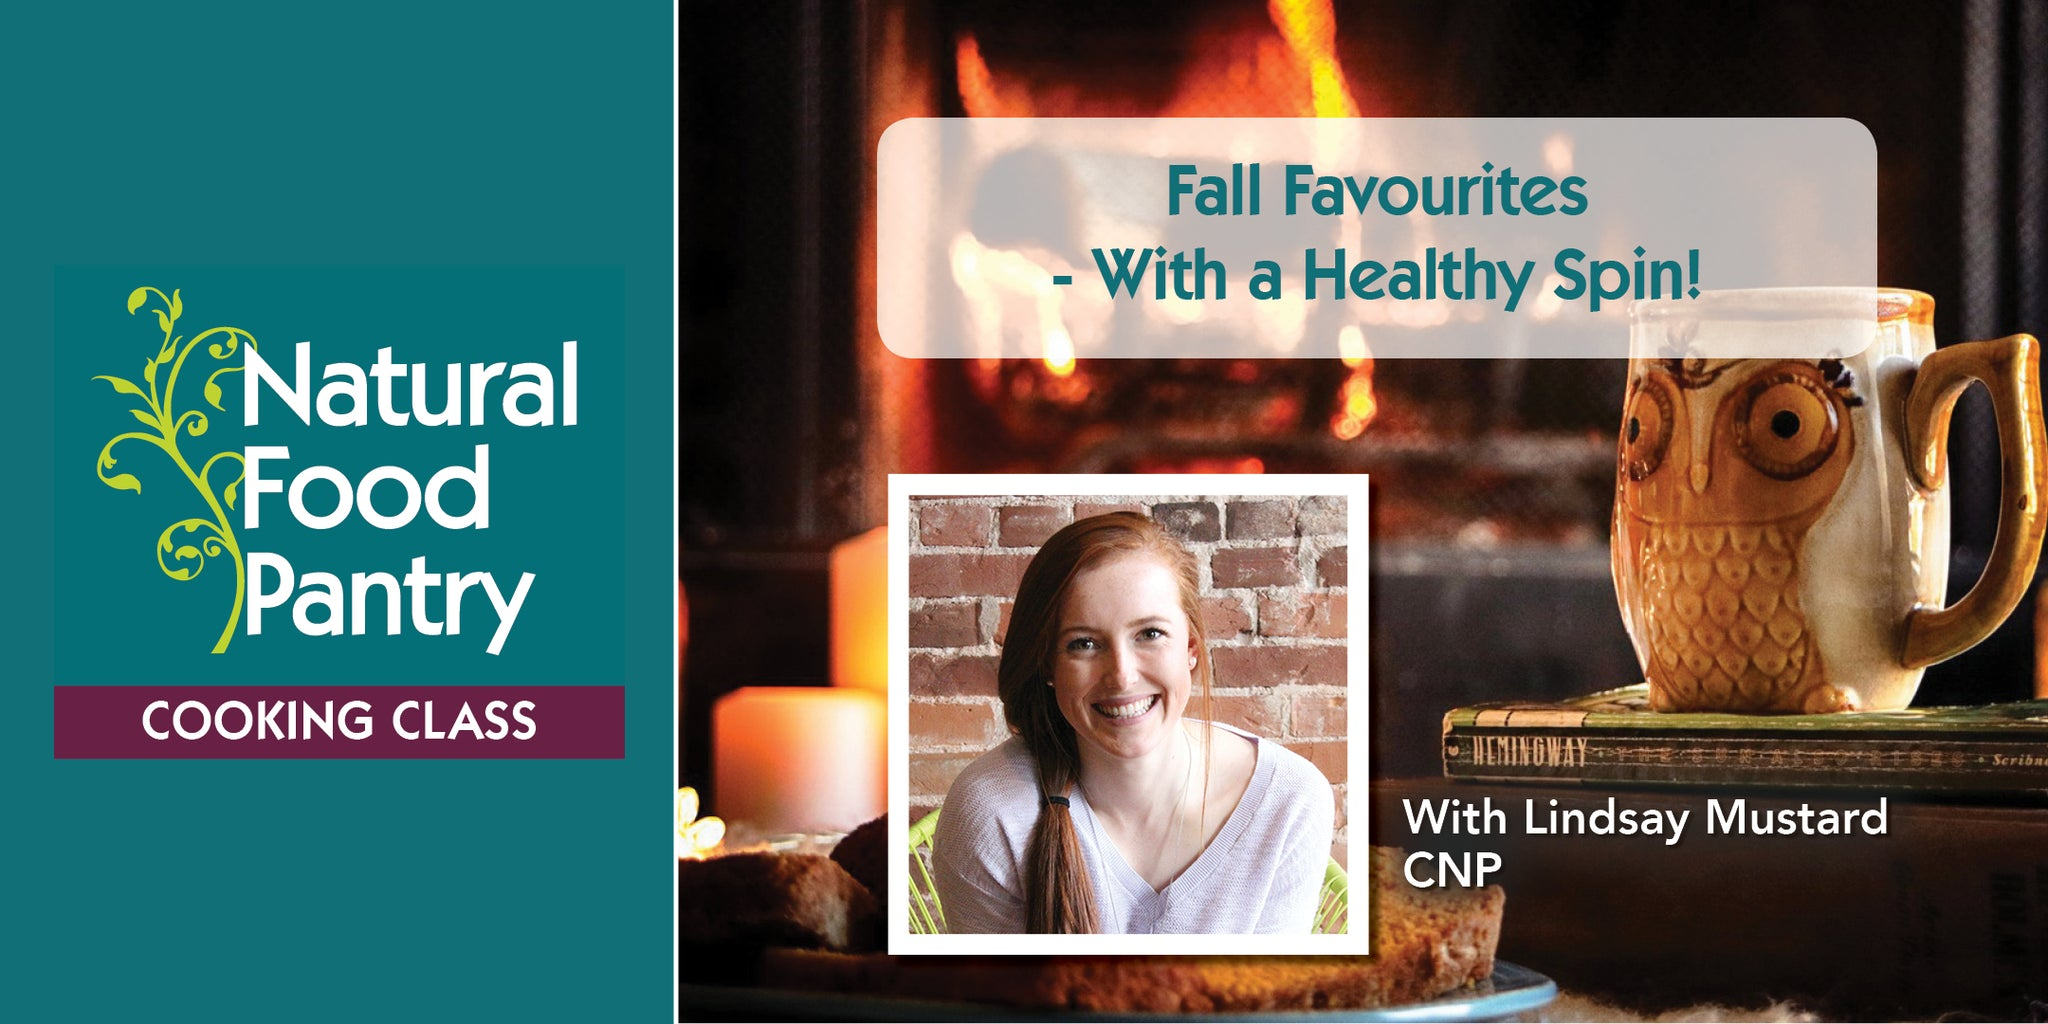 Nov 9: NFP Cooking Class: Fall Favourites - With a Healthy Spin!